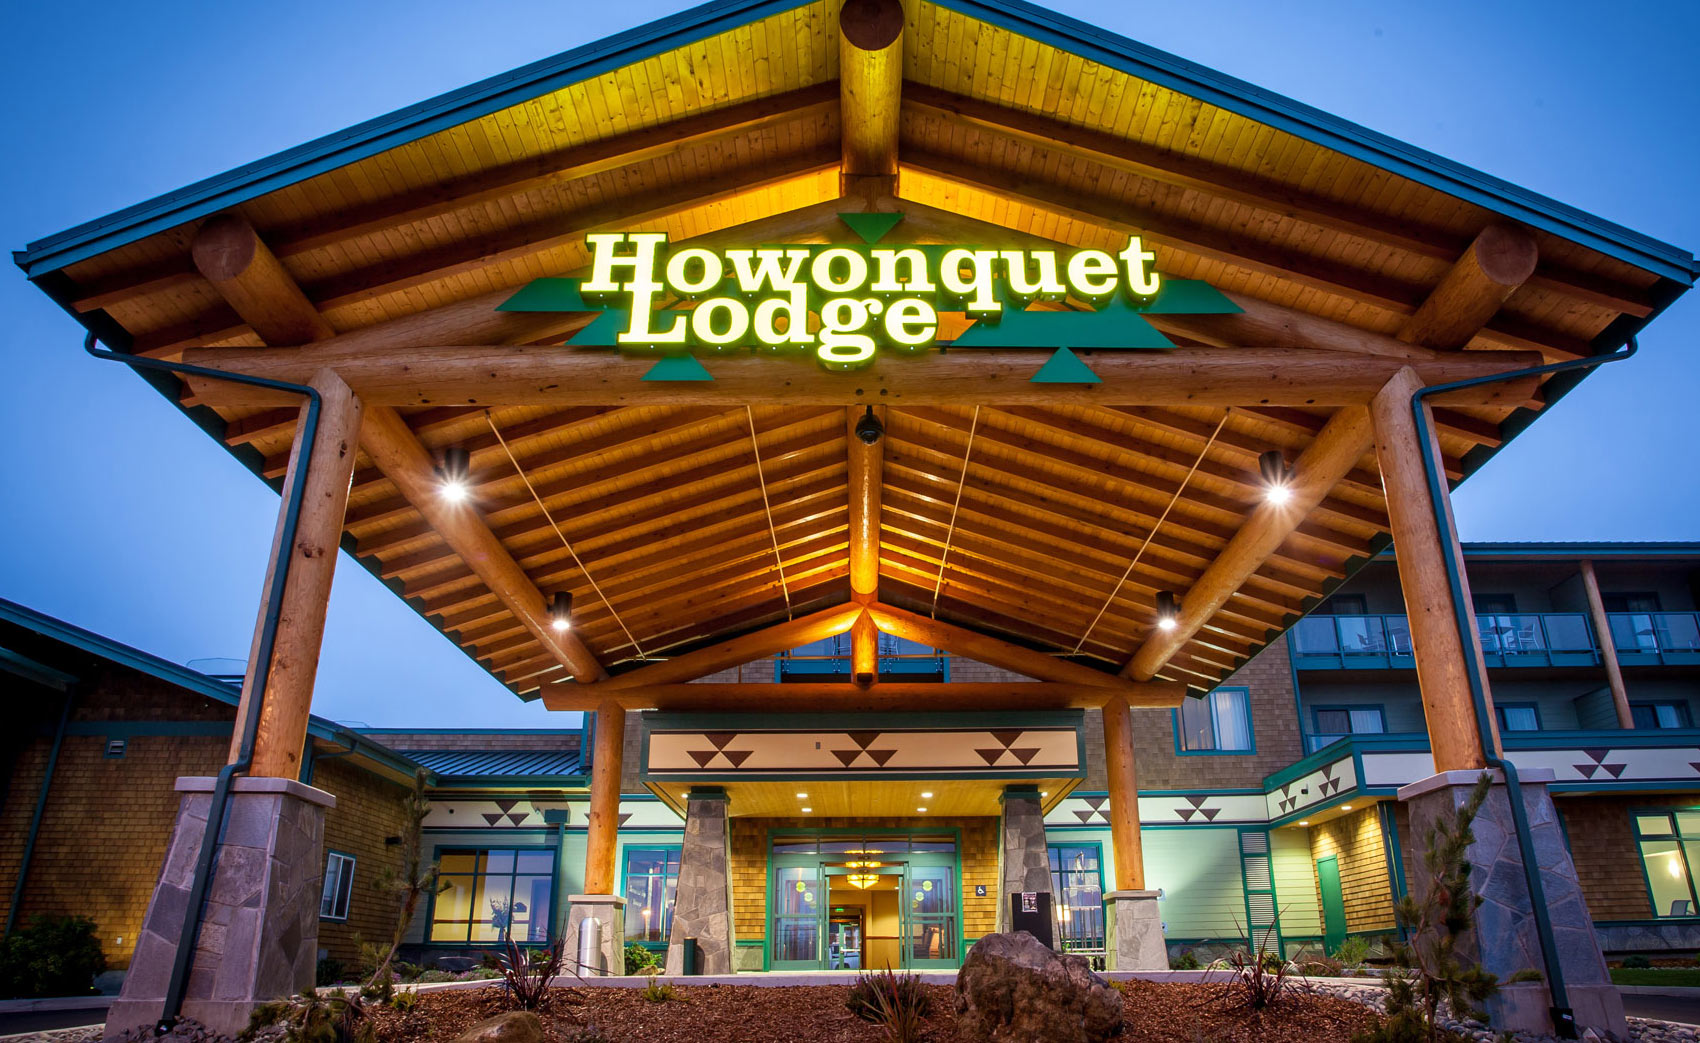 Smith River Howonquet Lodge - Lucky 7 Caasino